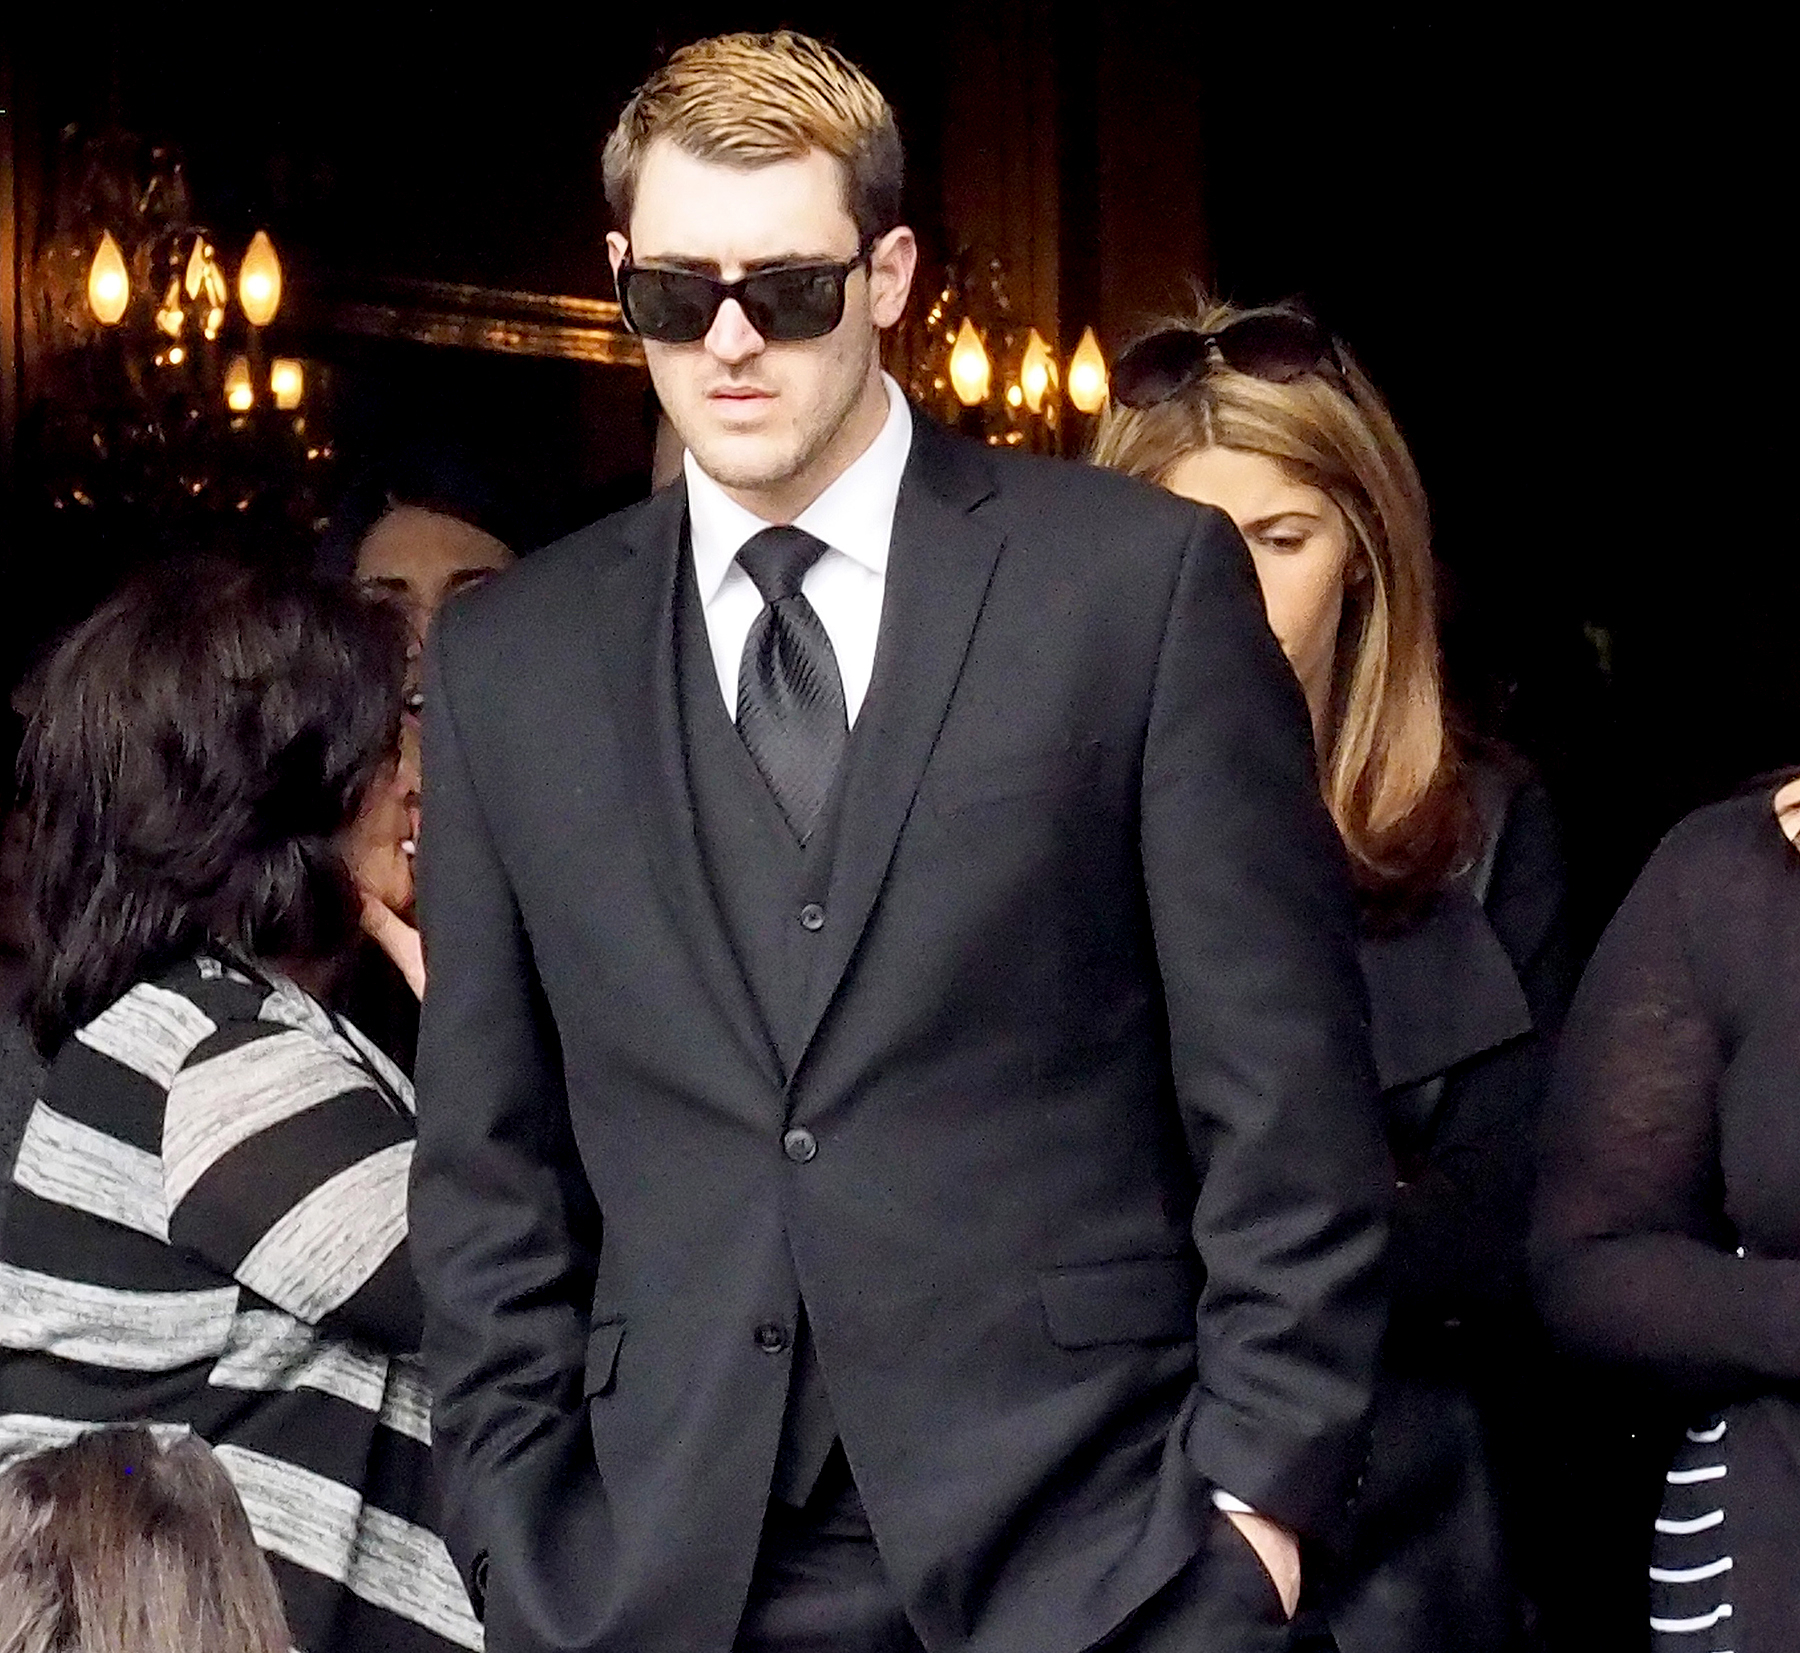 Anthony 'AJ' D'Onofrio, Angela 'Big Ang' Raiola's son seen at the memorial service held for her on February 21, 2016, in New York City.